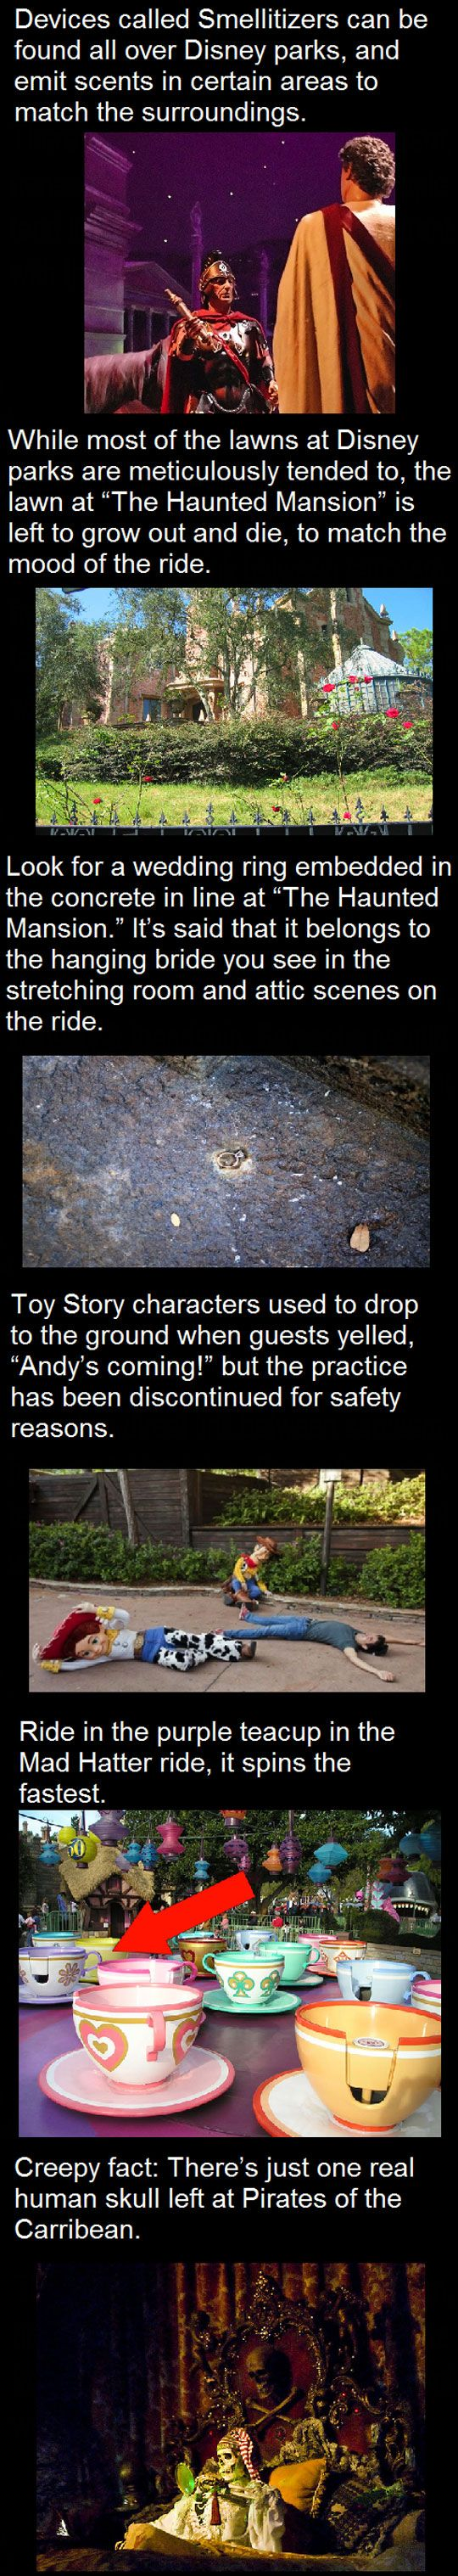 Things You Probably Didn't Know About Disney Parks // funny pictures - funny photos - funny images - funny pics - funny quotes - #lol #humor #funnypictures